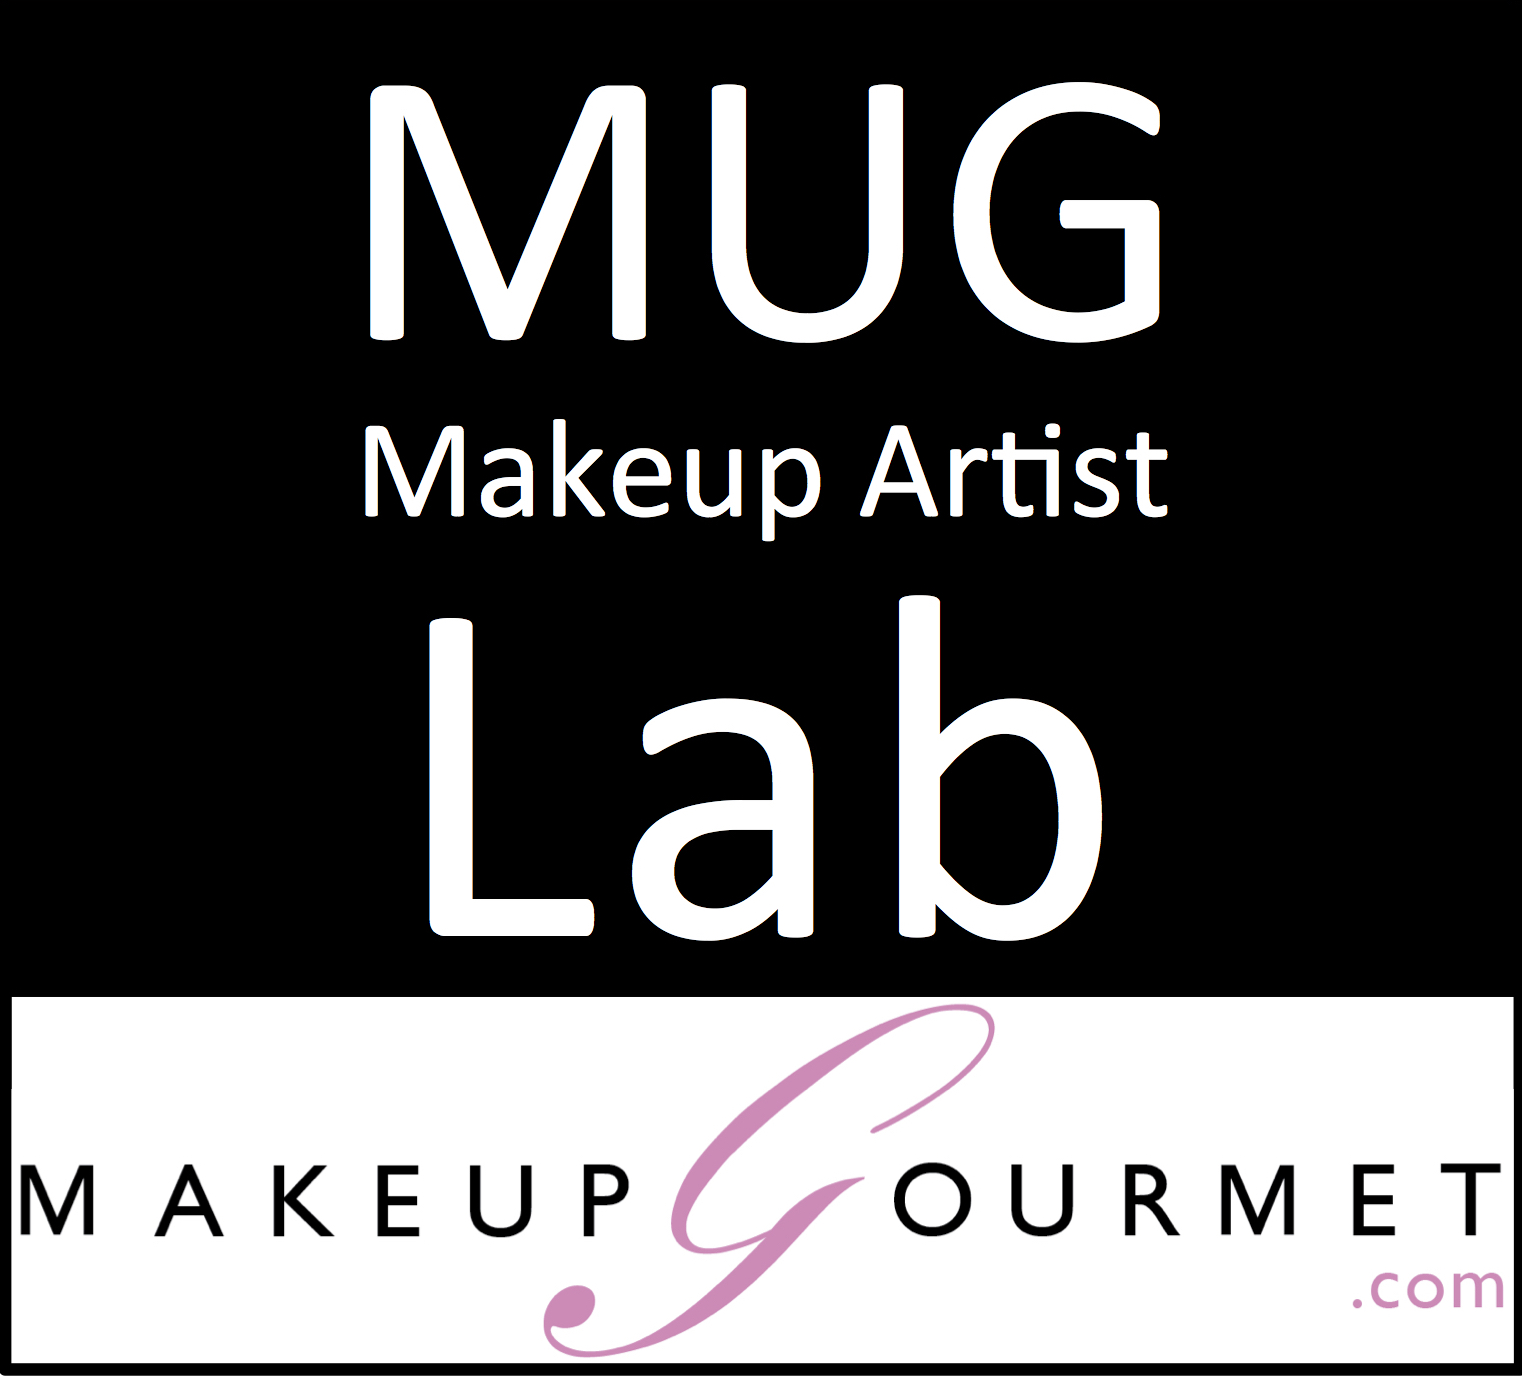 MUG Makeup Artist Lab led by Makeup Gourmet Chris Scott